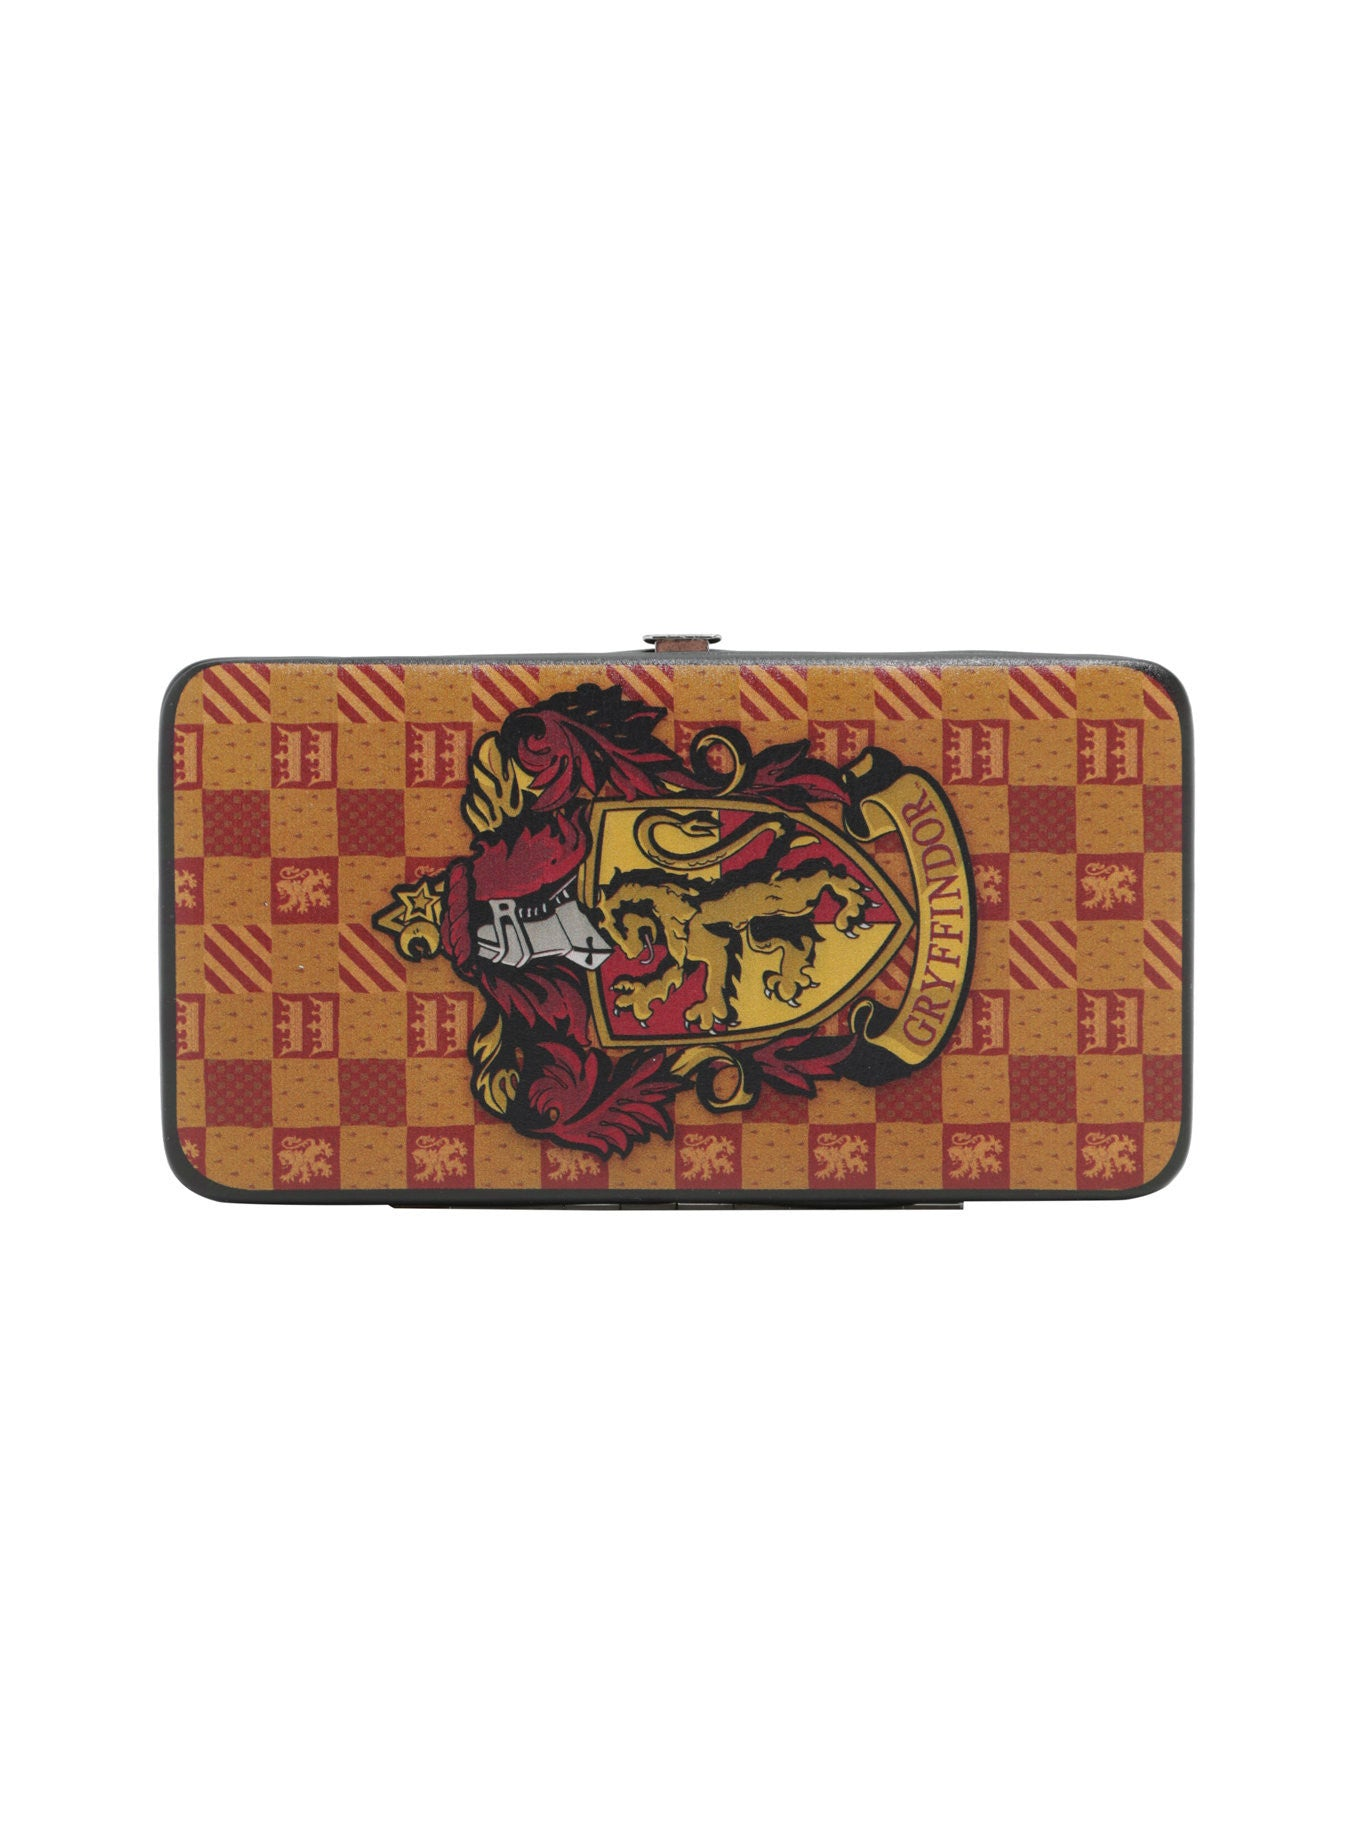 HARRY POTTER GRYFFINDOR CHECKERED HOUSE CREST HINGE WALLET